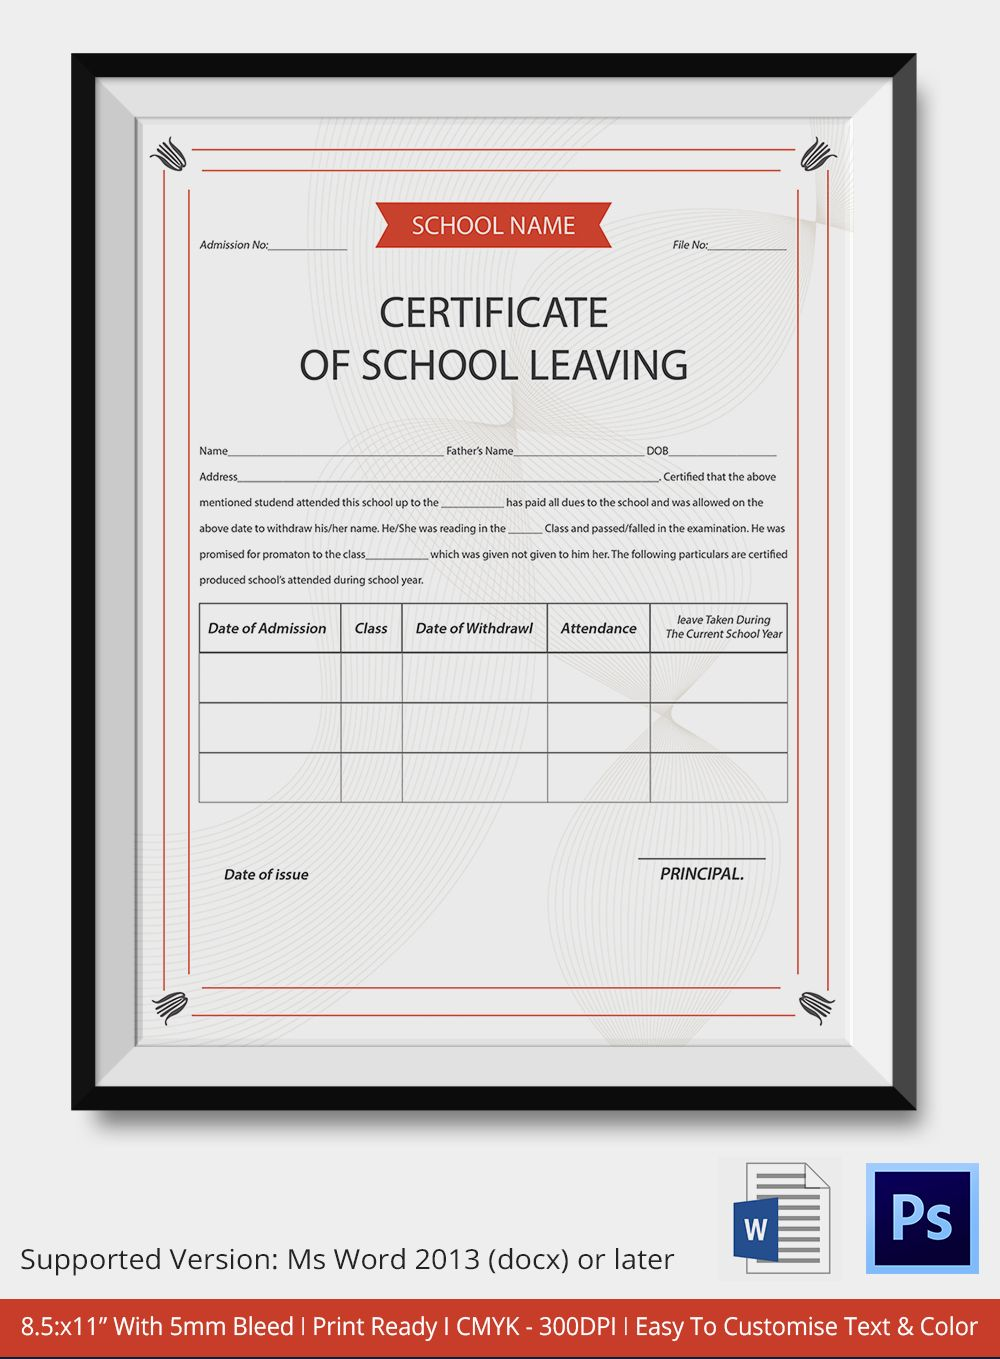 School leaving certificate template certificate templates school leaving certificate template yadclub Image collections